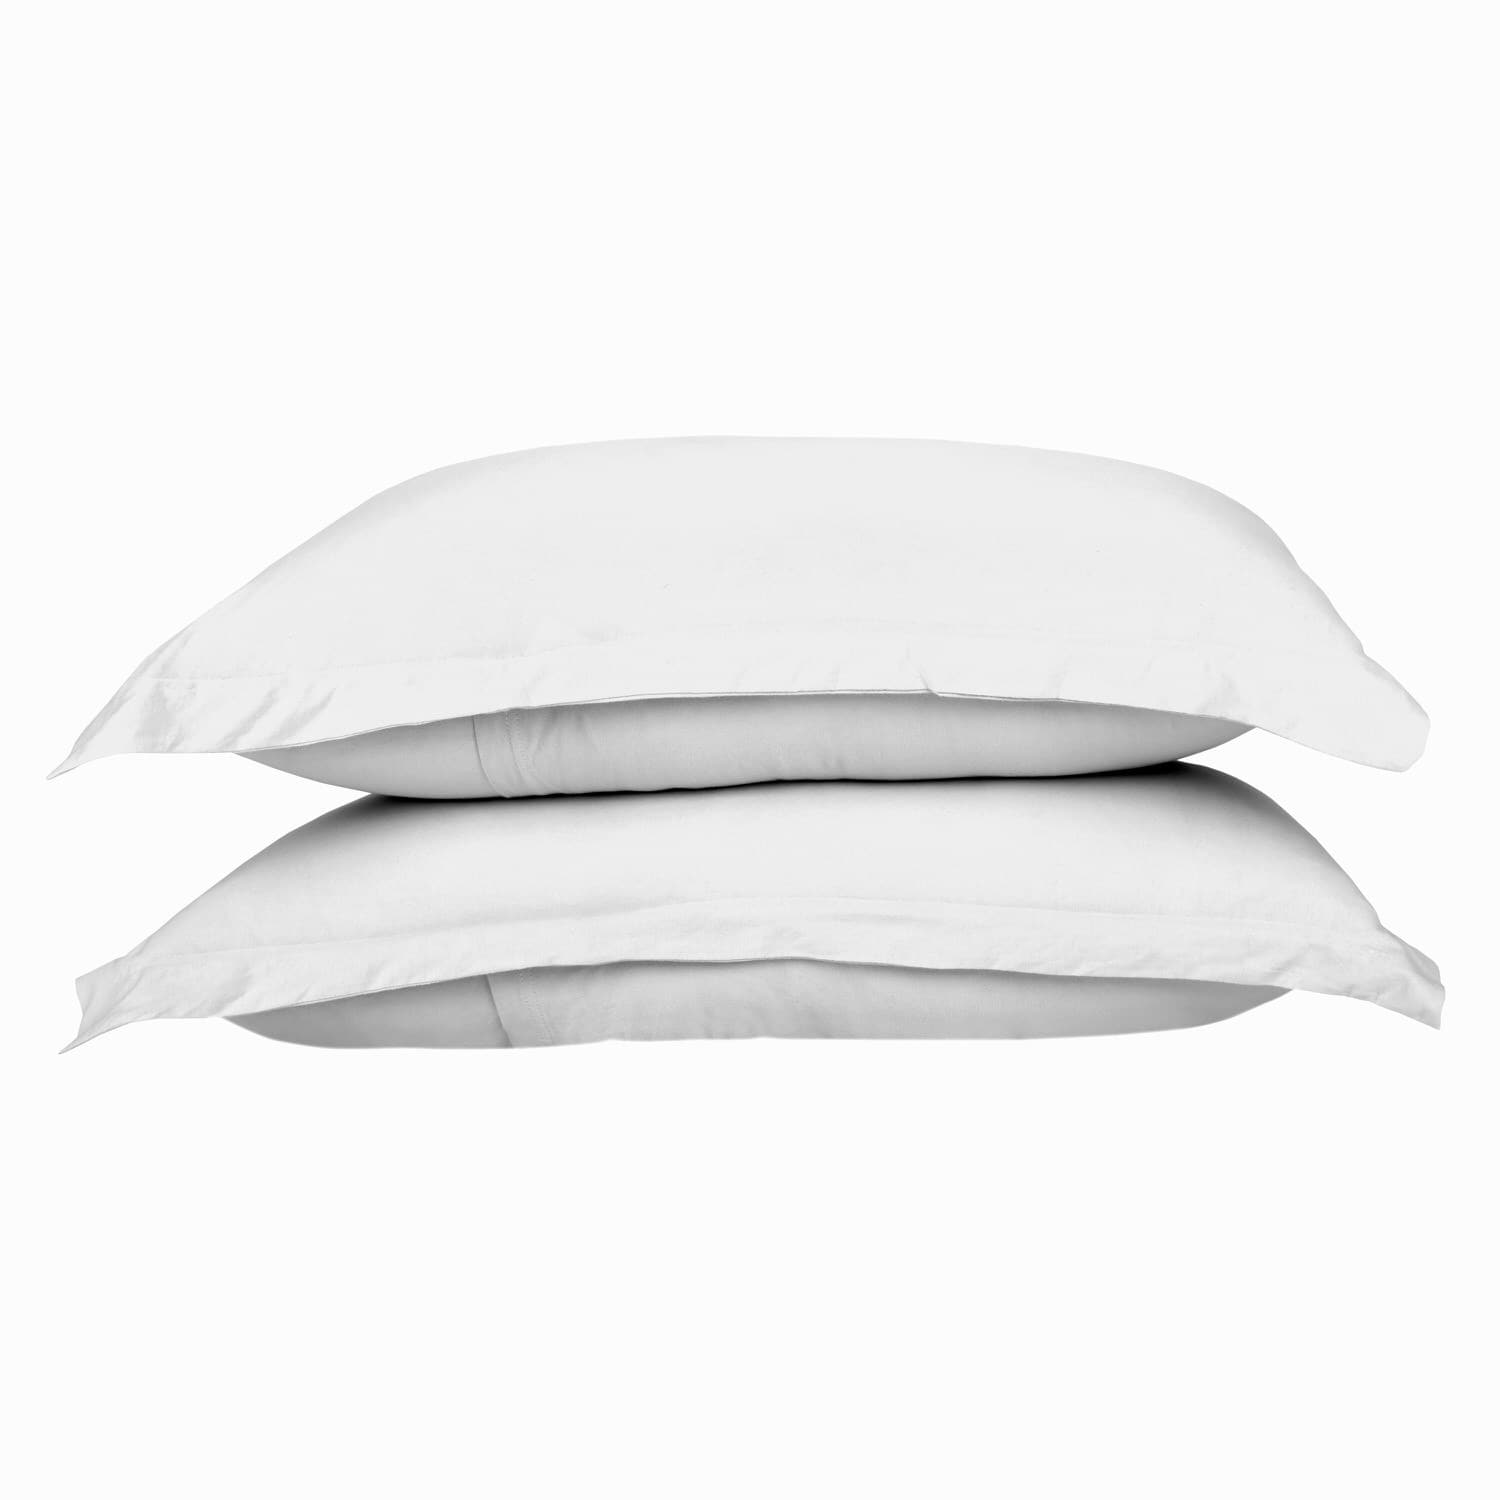 100% Premium Combed Cotton Jersey White Fitted Pillow Case Set With Aloe Vera Treatment